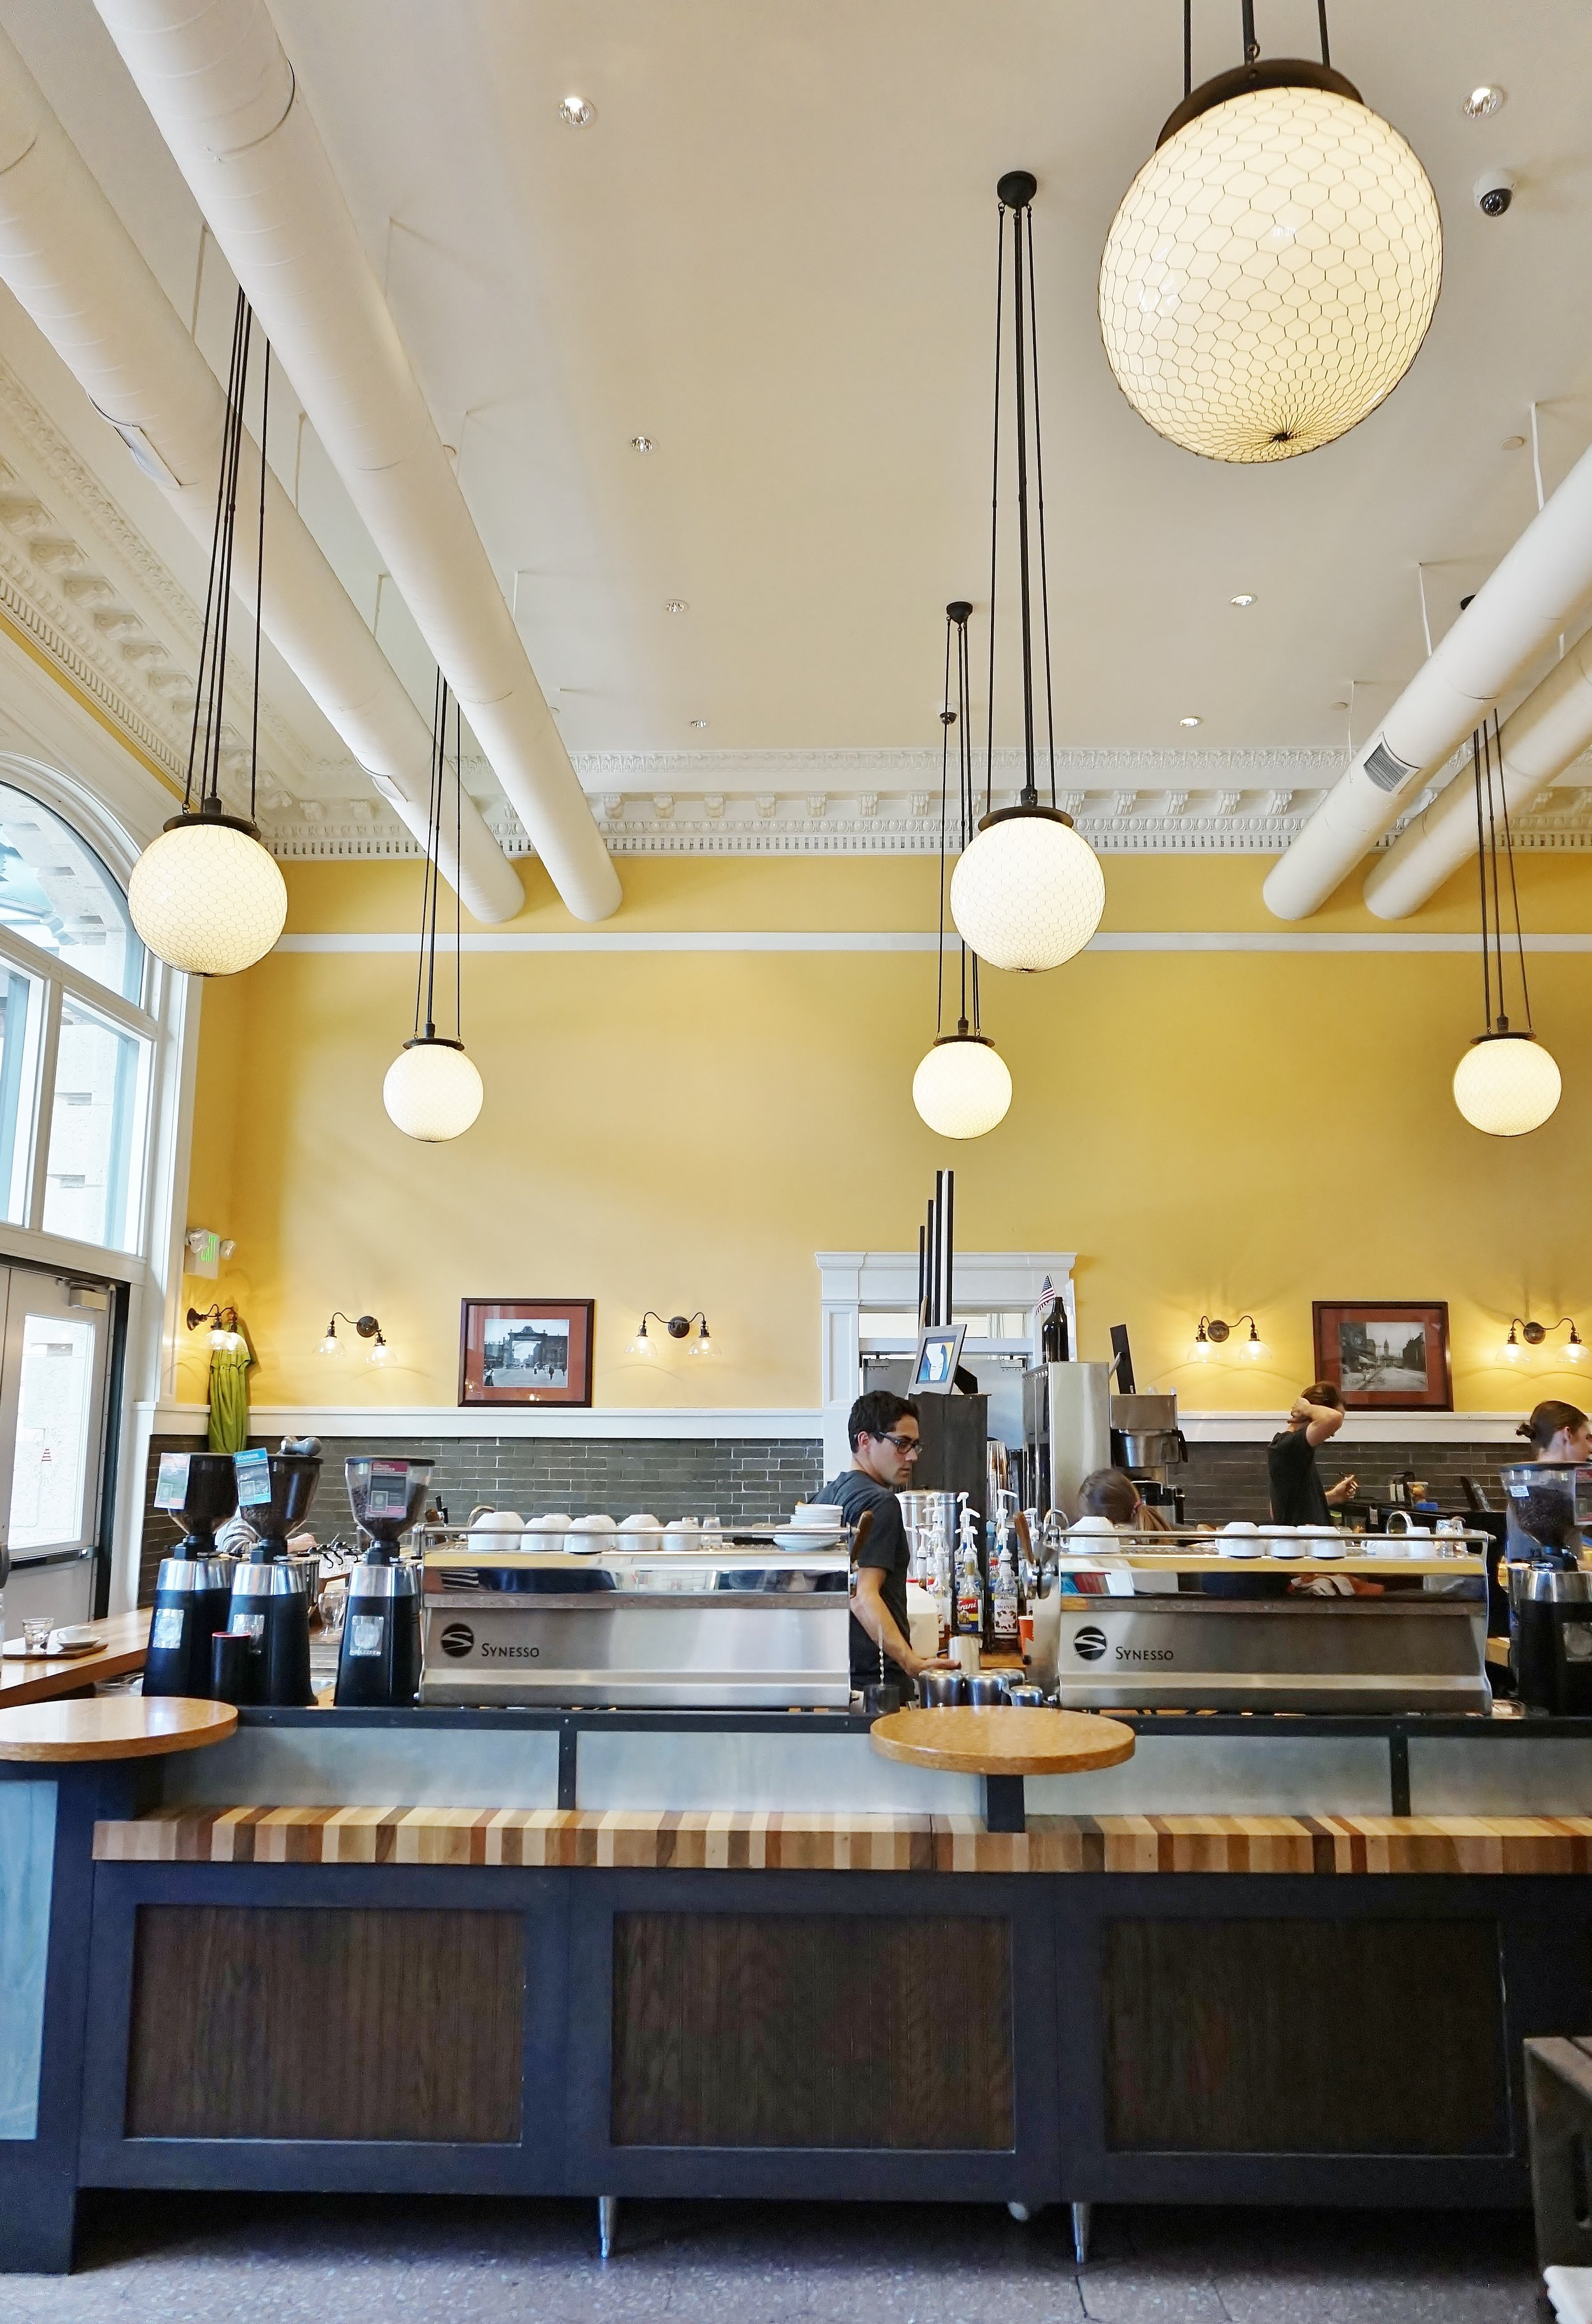 Coffee shop | The Crawford Hotel at Union Station | Denver, Colorado